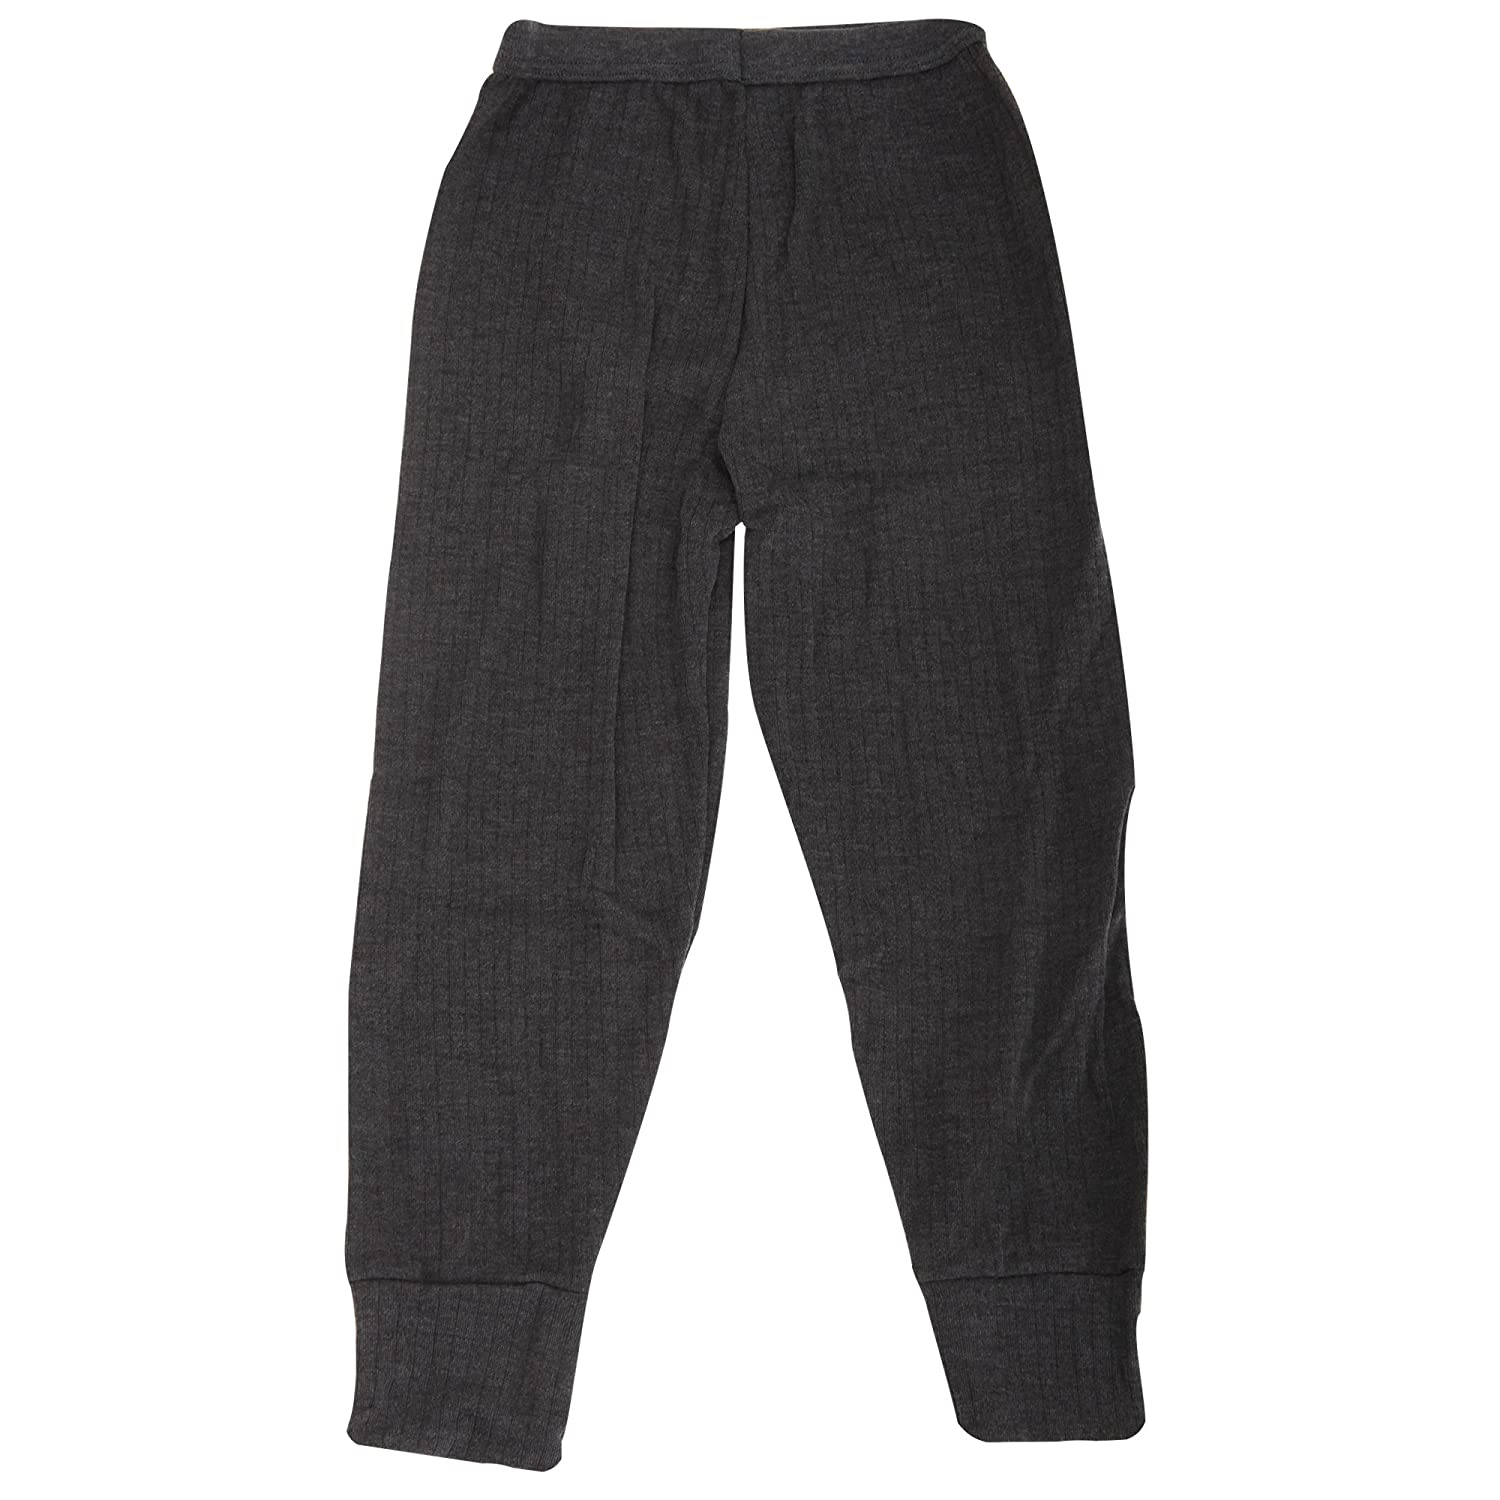 Universal Textiles Boys Thermal Clothing Long Johns Polyviscose Range (British Made)